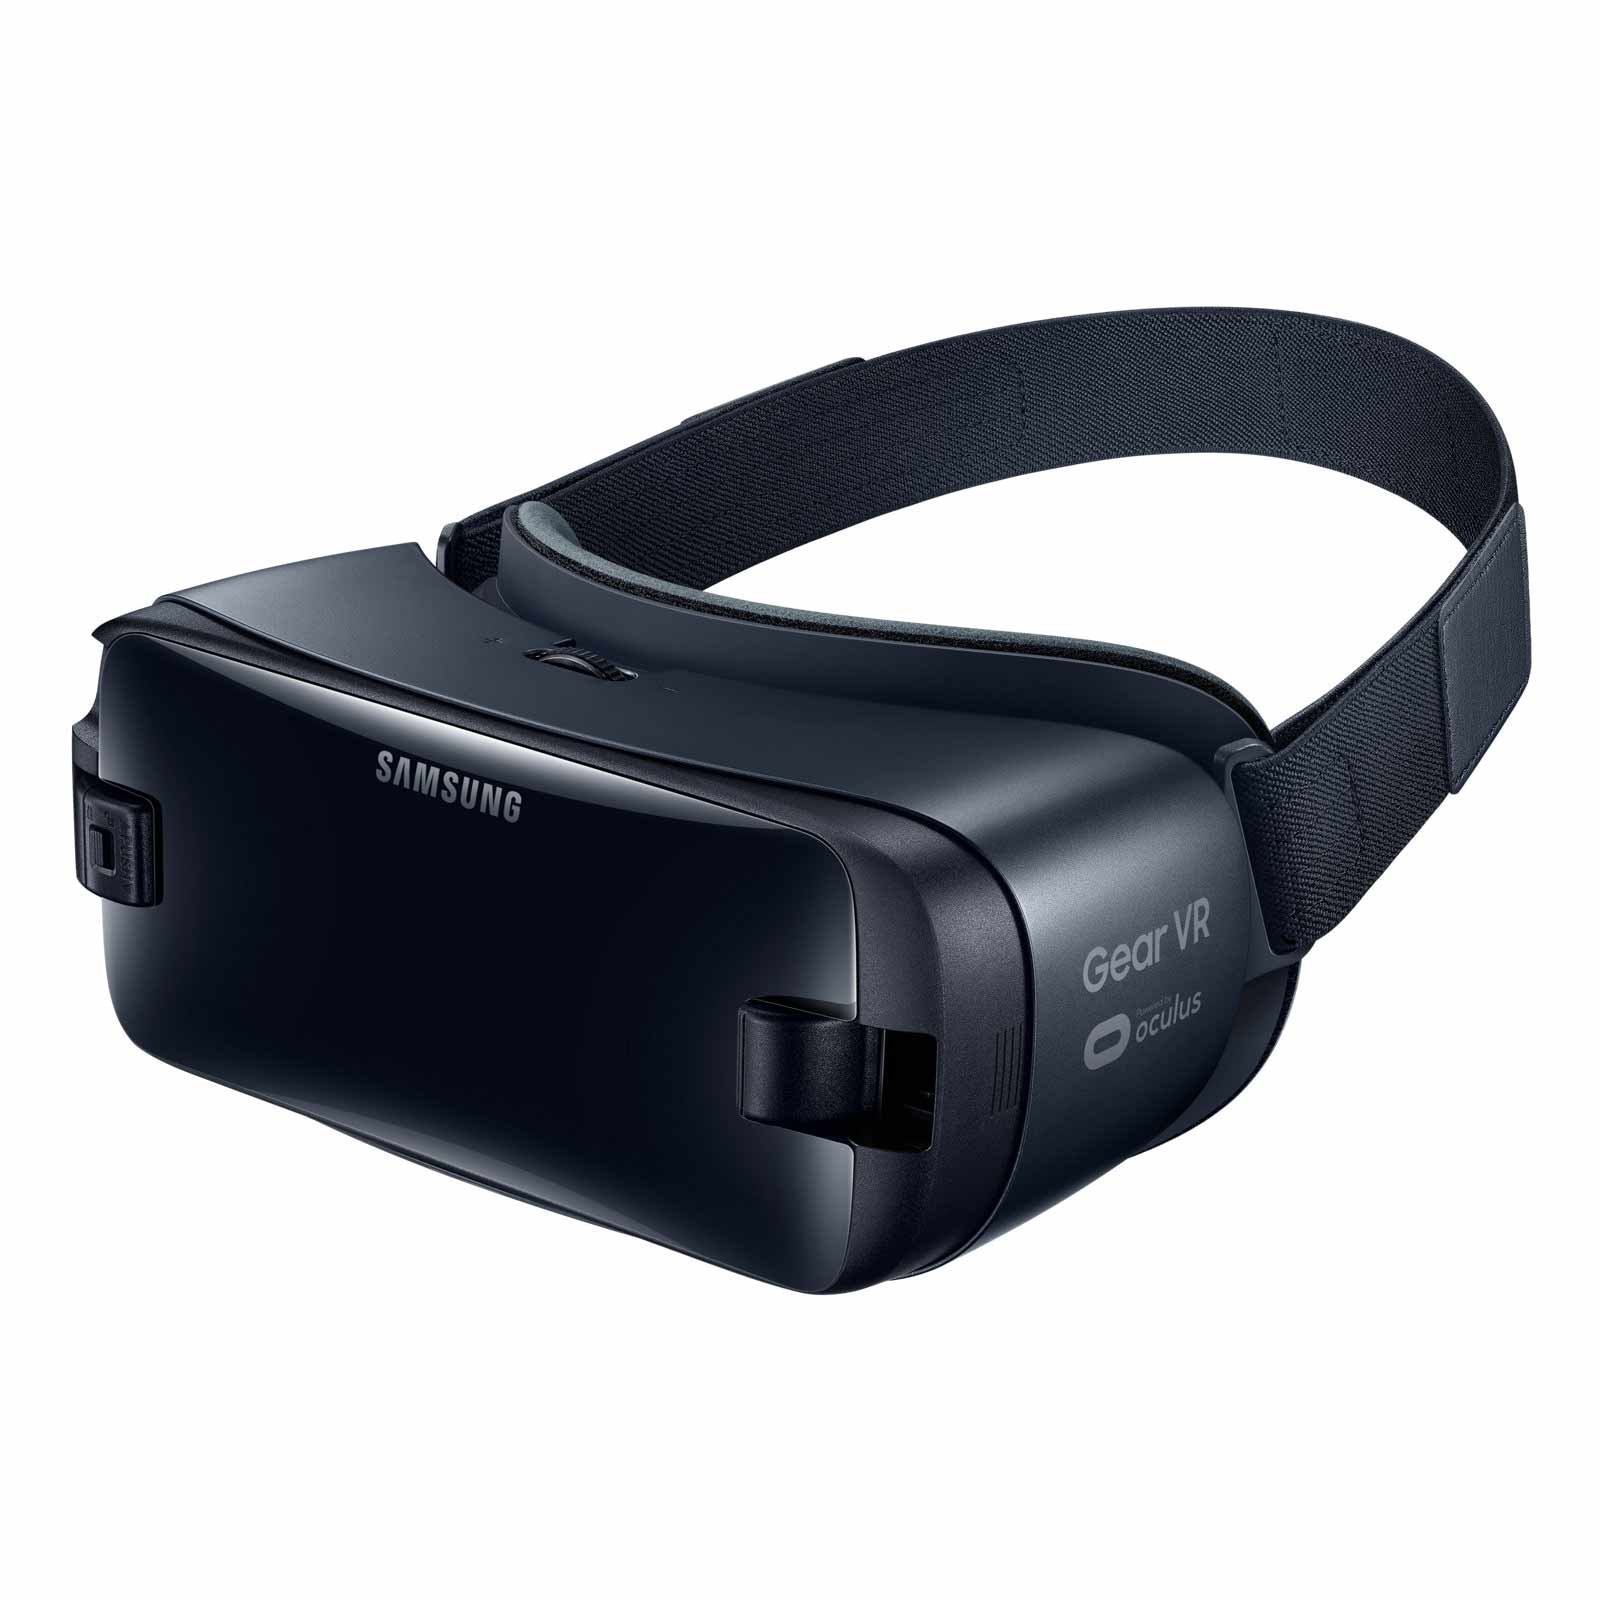 Samsung Gear VR (2017 Edition) with Controller Virtual Reality Headset SM-R325 for Galaxy S8, S8+, S7, S7 edge, Note5, Note 8, S6 edge+, S6, S6 edge (International Version, No Warranty) by Samsung (Image #8)